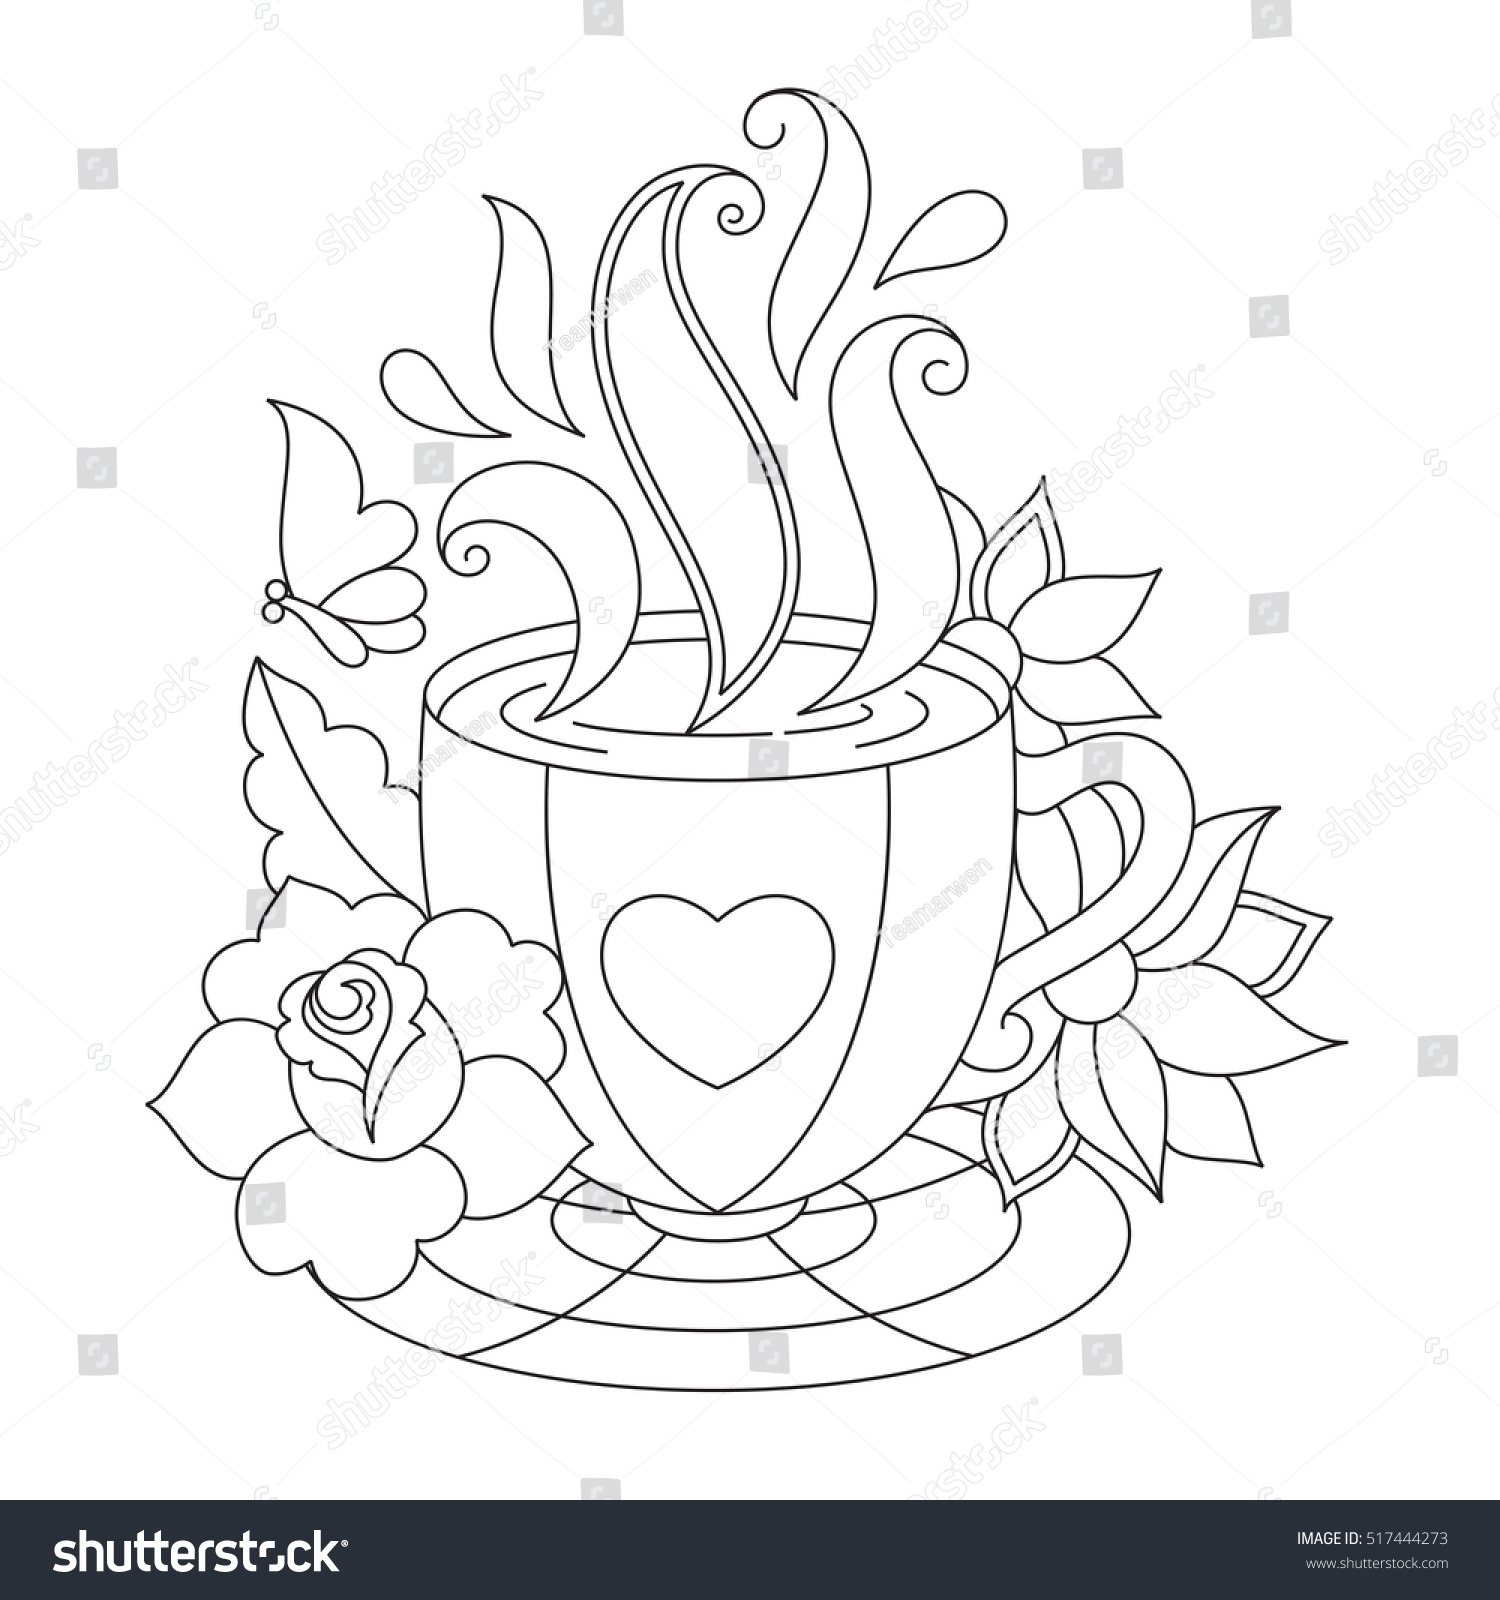 Vector coffee tea cup coloring pages stock vector for Cup picture for colouring